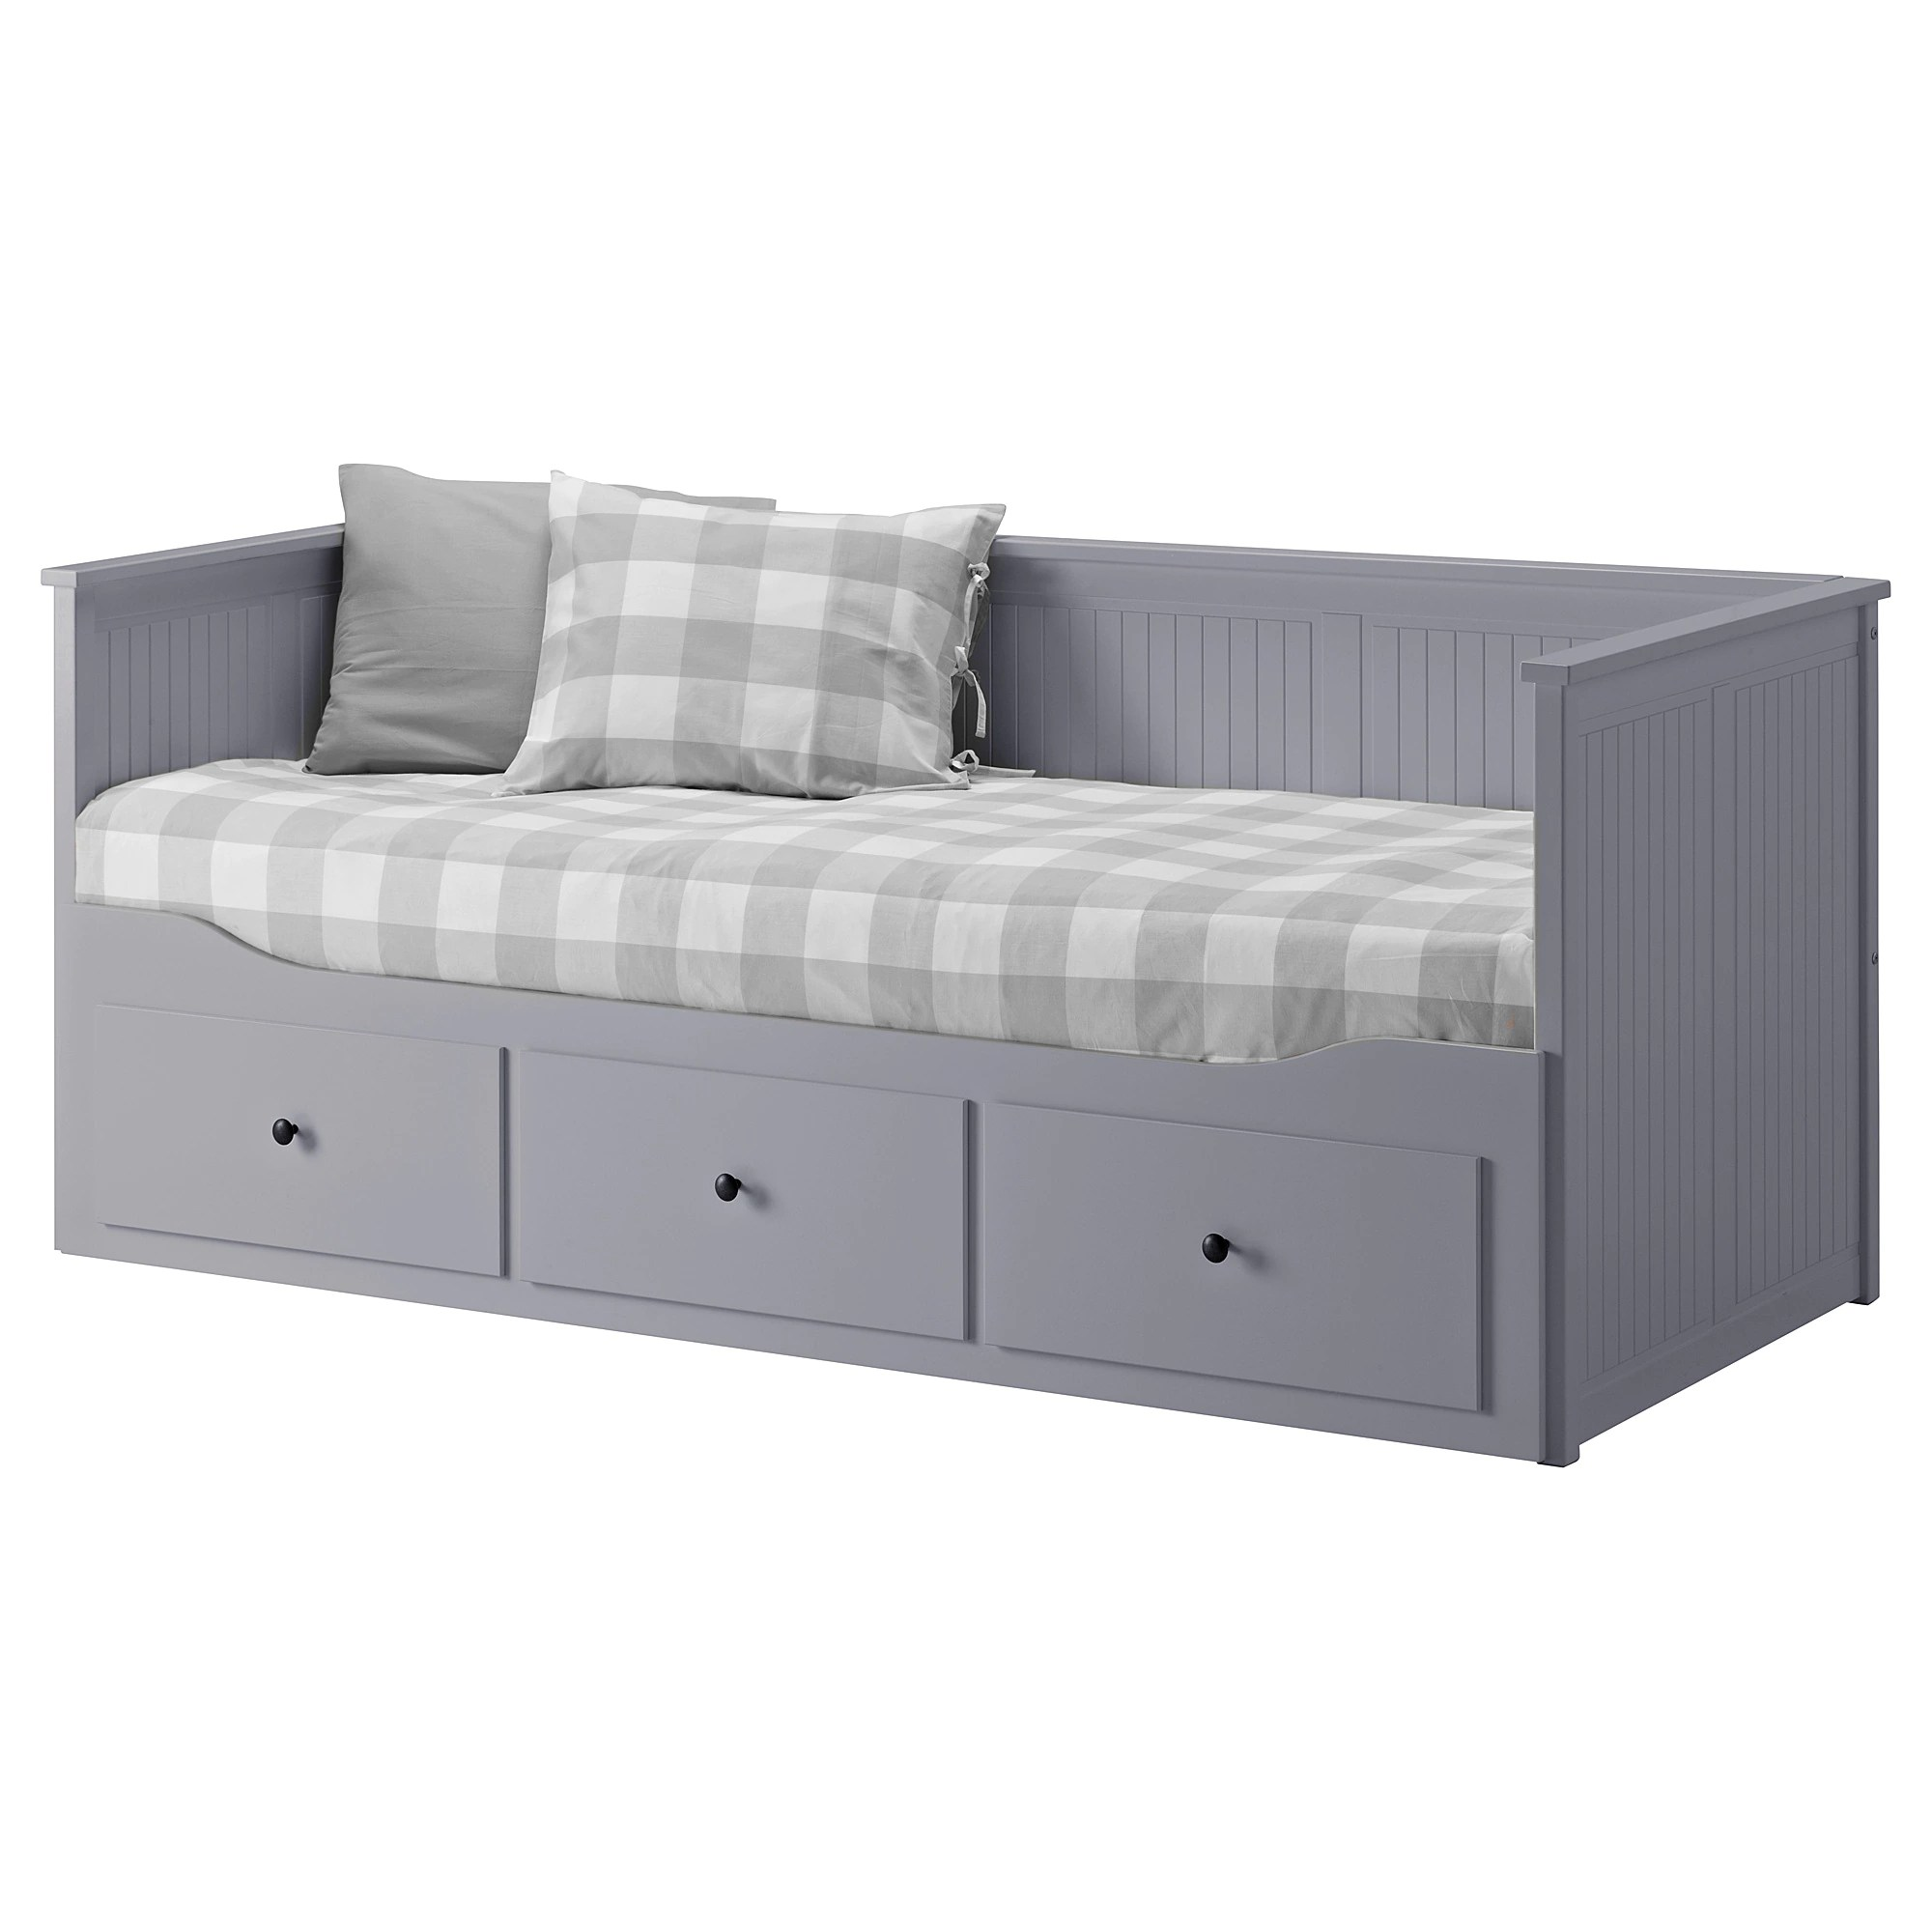 Ikea Sofa Bed Day Bed Frame With 3 Drawers Hemnes Grey